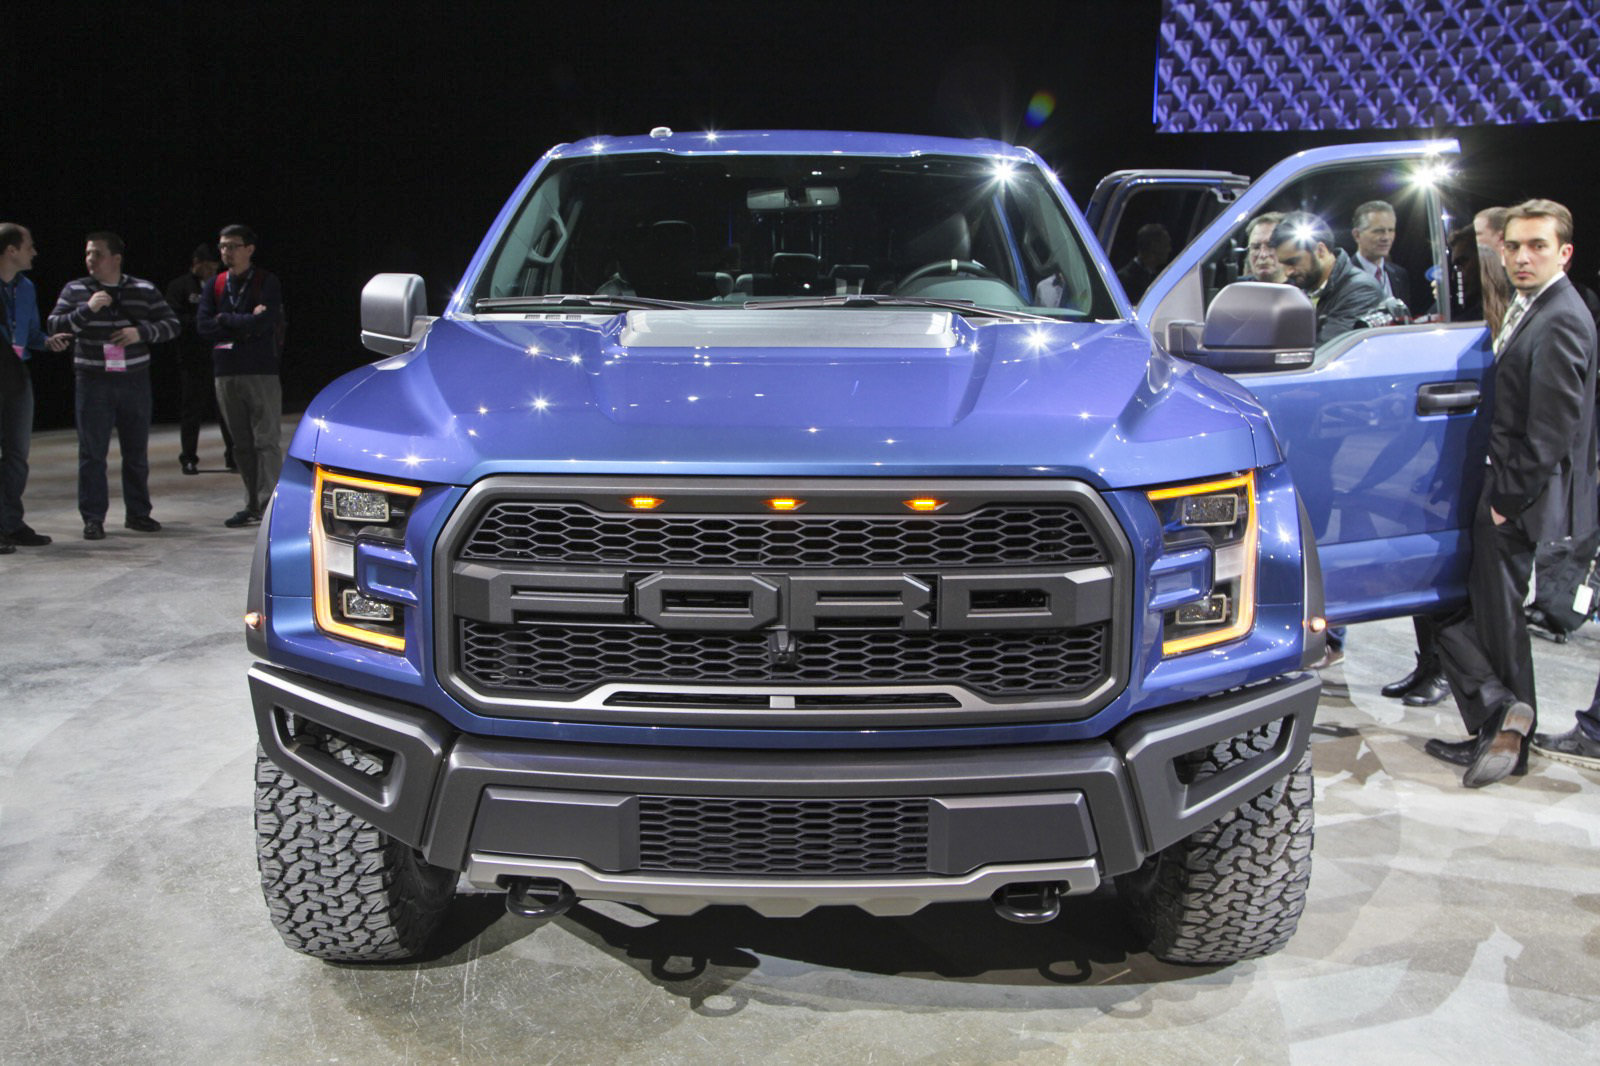 2017 ford f 150 raptor picture 613163 truck review top speed. Black Bedroom Furniture Sets. Home Design Ideas